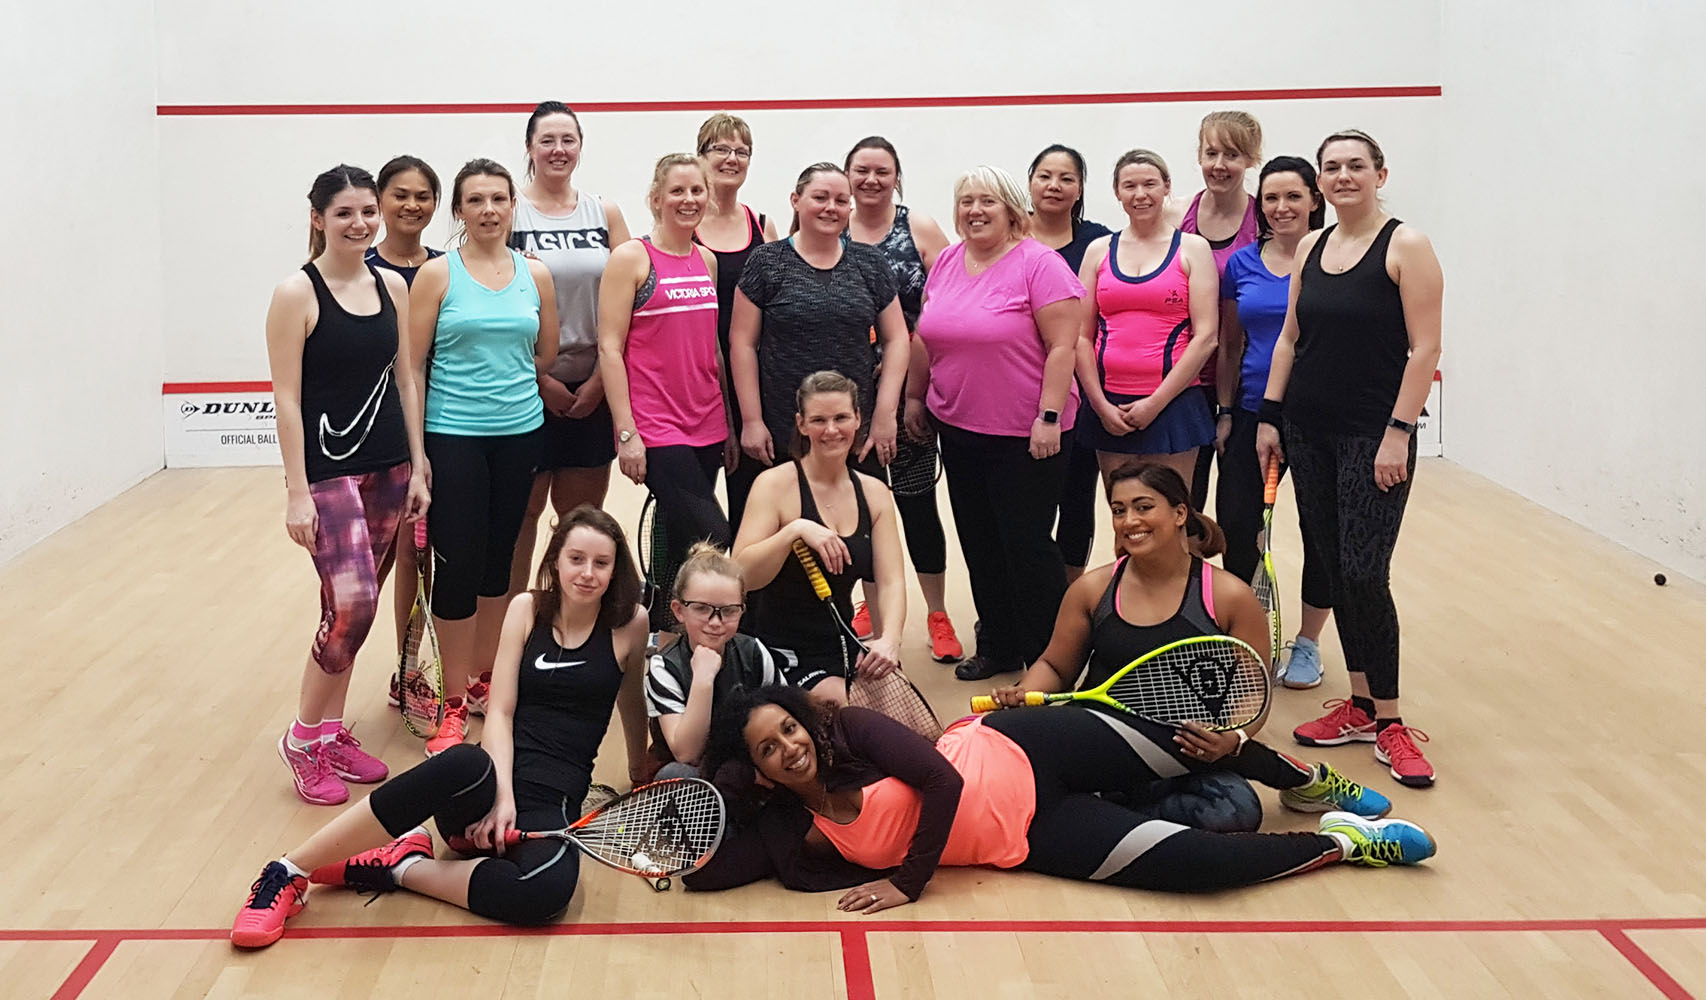 Jayne Robinson with the group of female players she coaches at Pontefract Squash Club